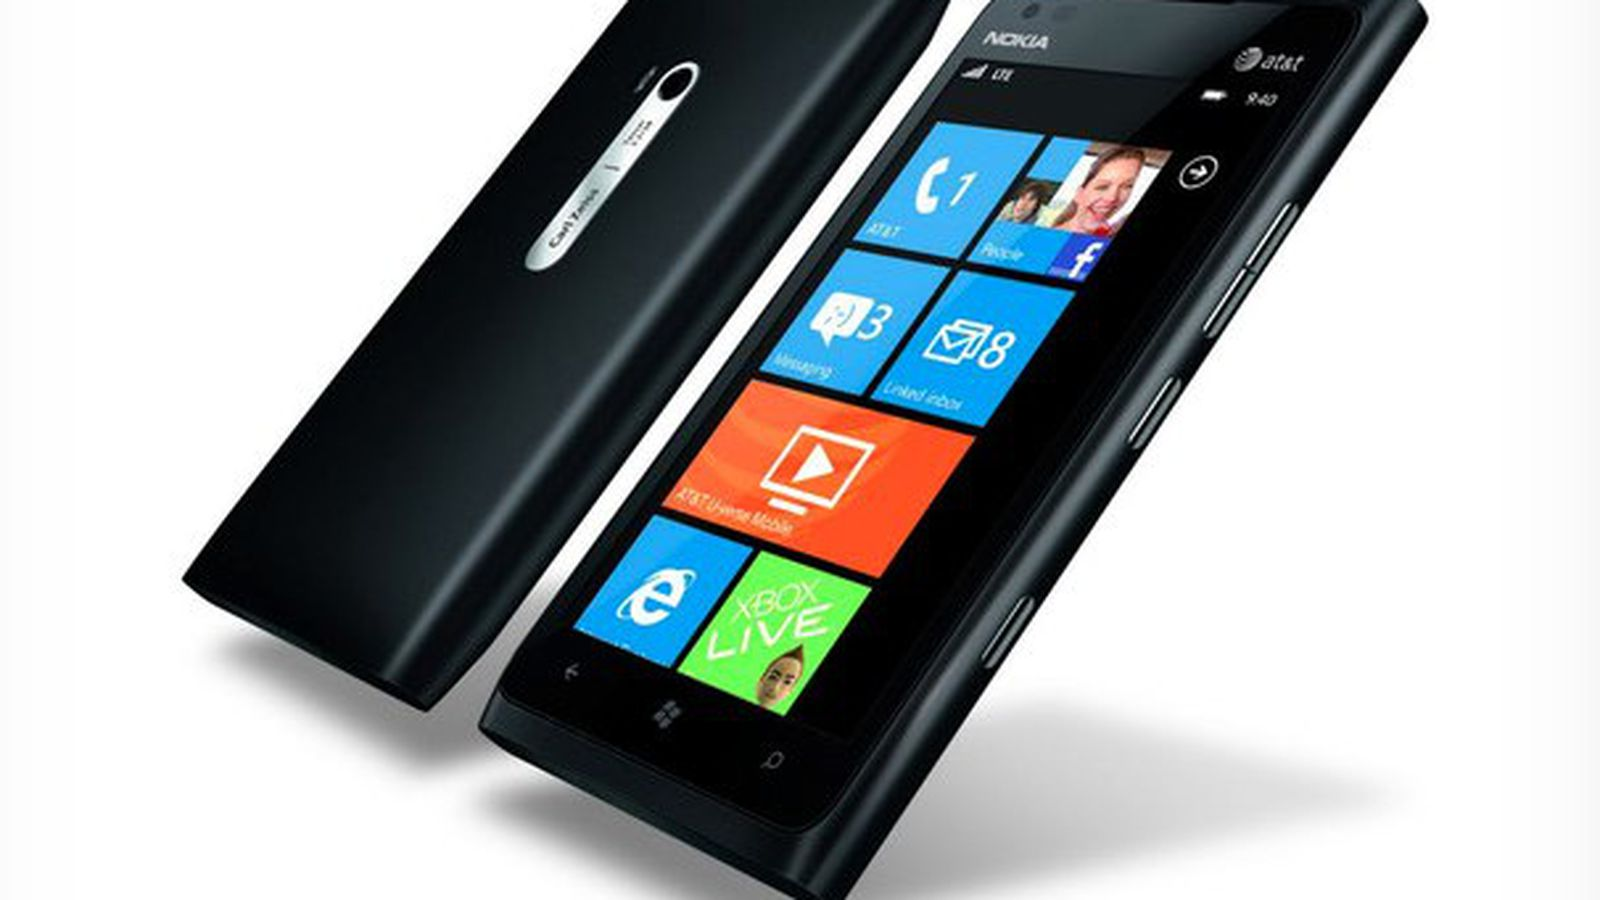 Nokia Lumia 900 on AT&T to support Visual Voicemail, but ...